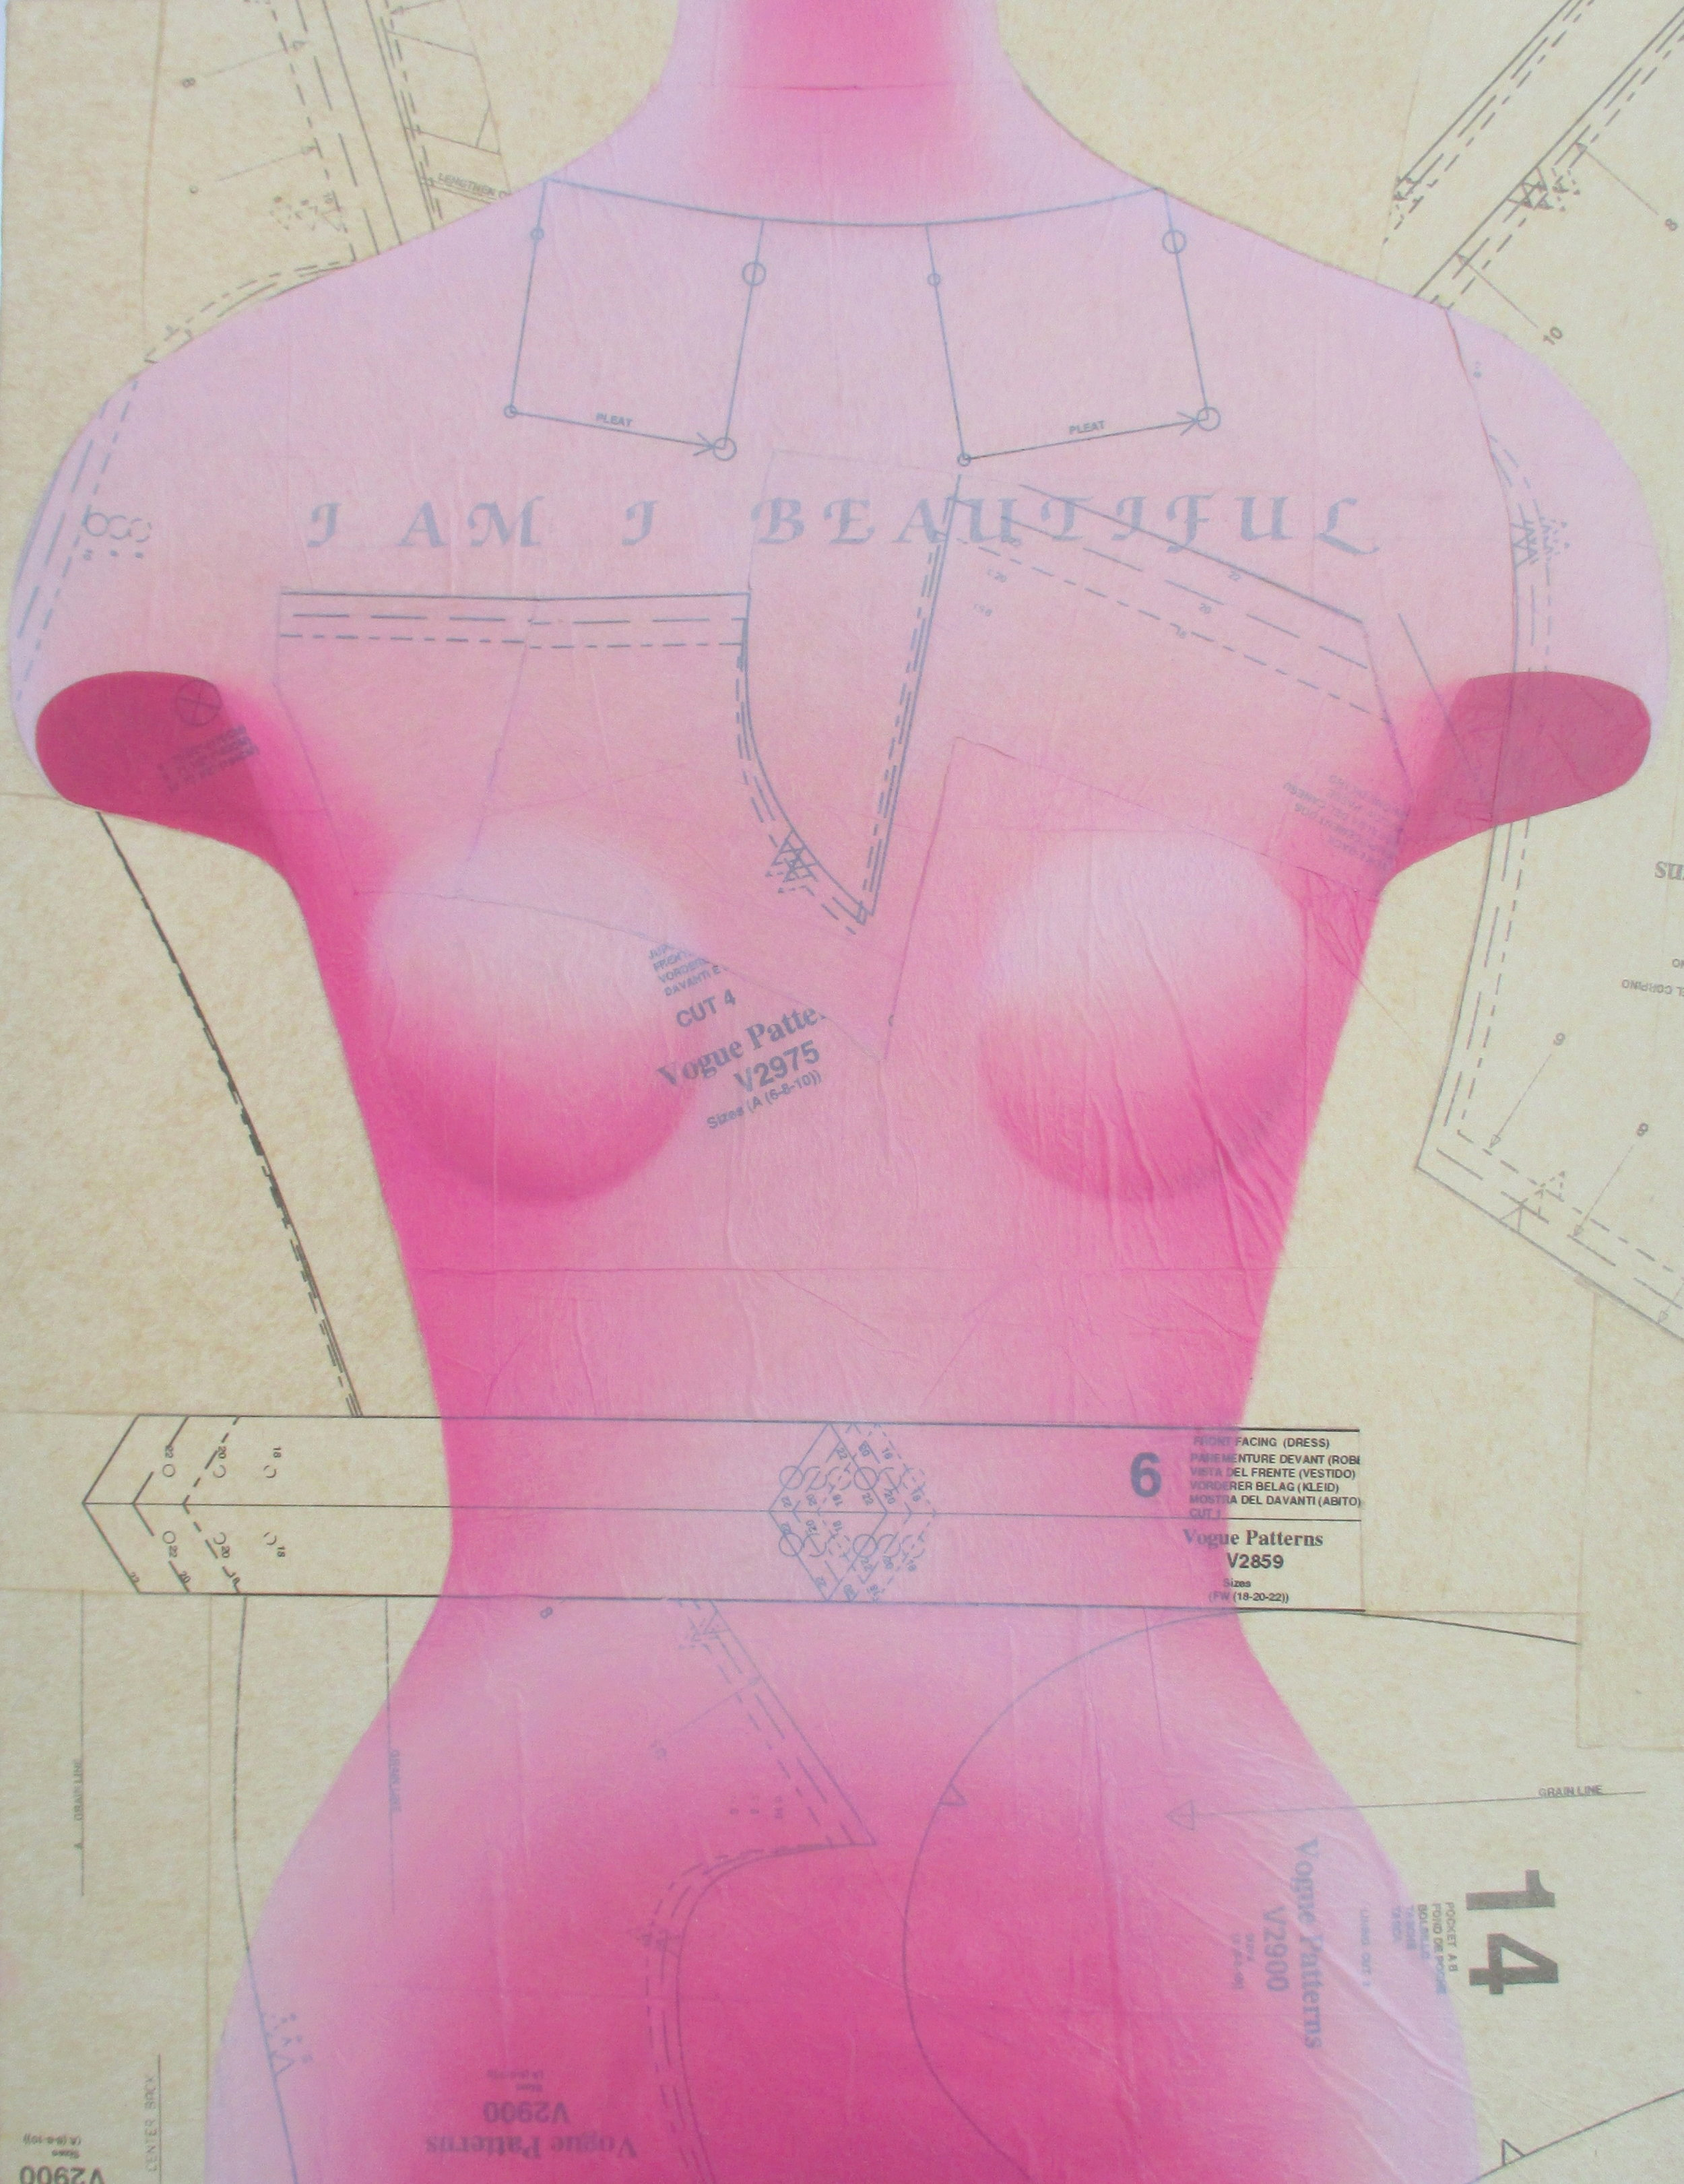 Sochor Lesia 'I Am I Beautiful' oil on collaged sewing pattern paper 19x27.jpg